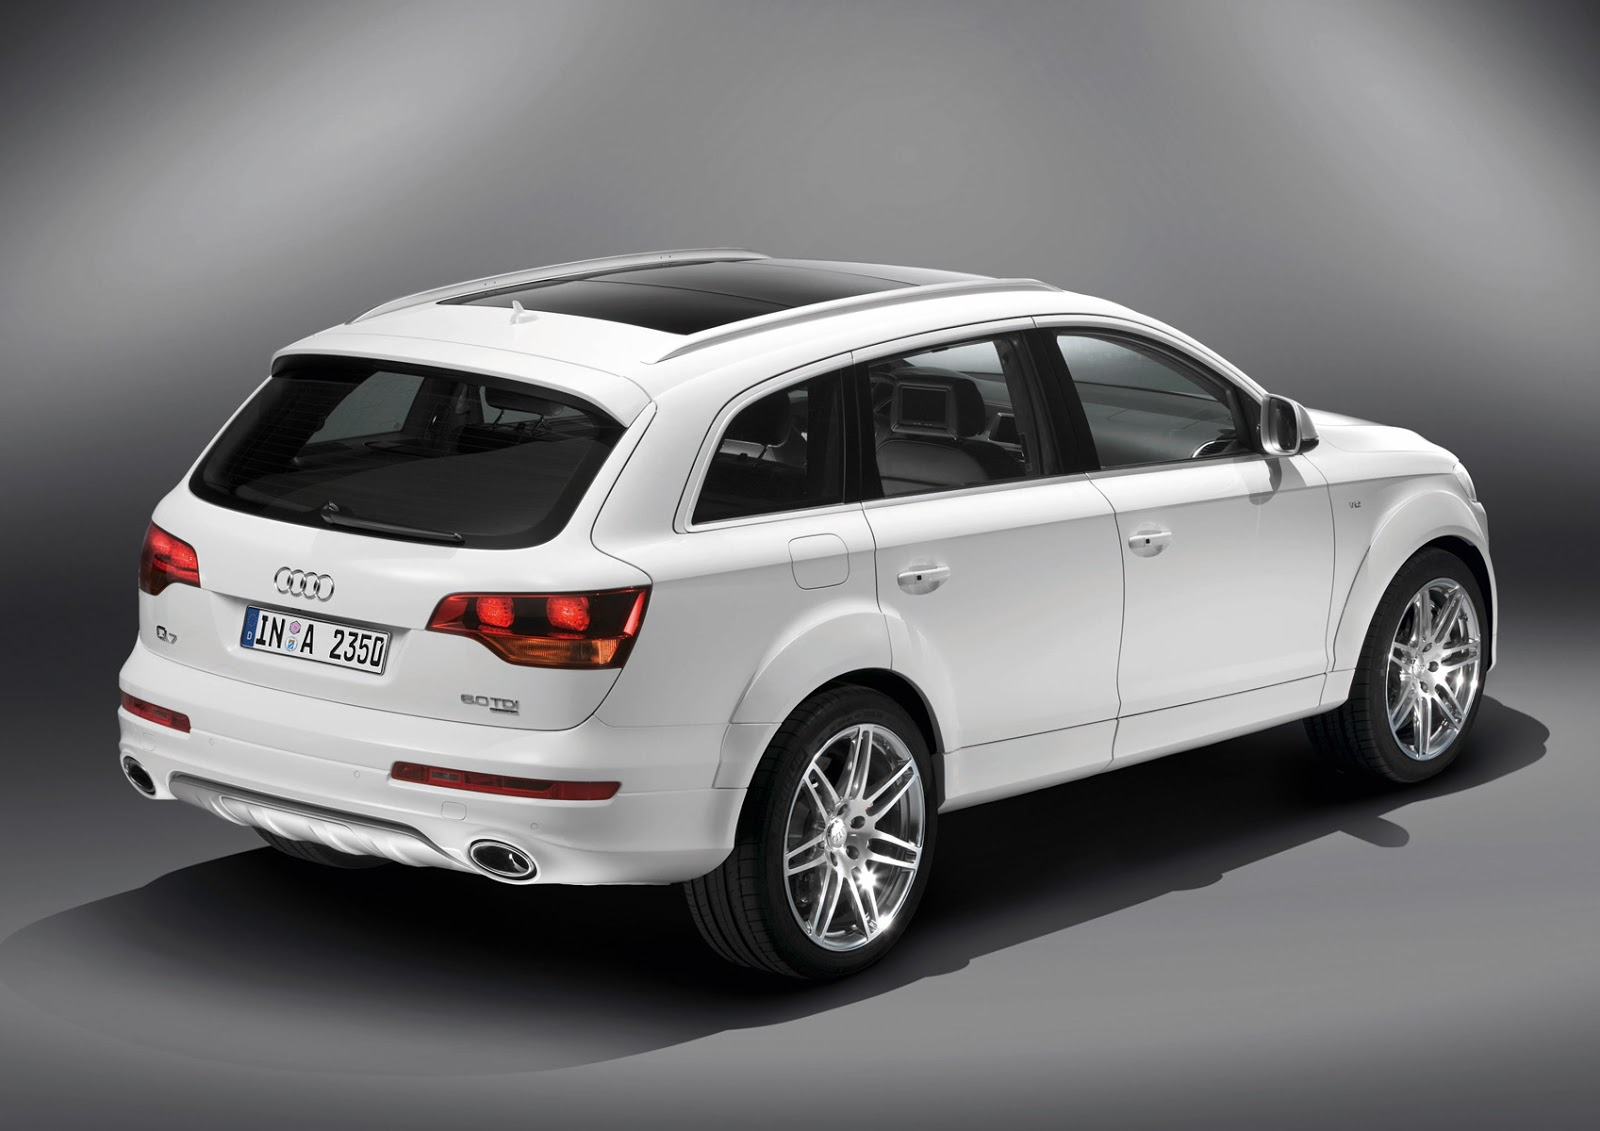 2013 audi q7 quattro tdi cars. Black Bedroom Furniture Sets. Home Design Ideas